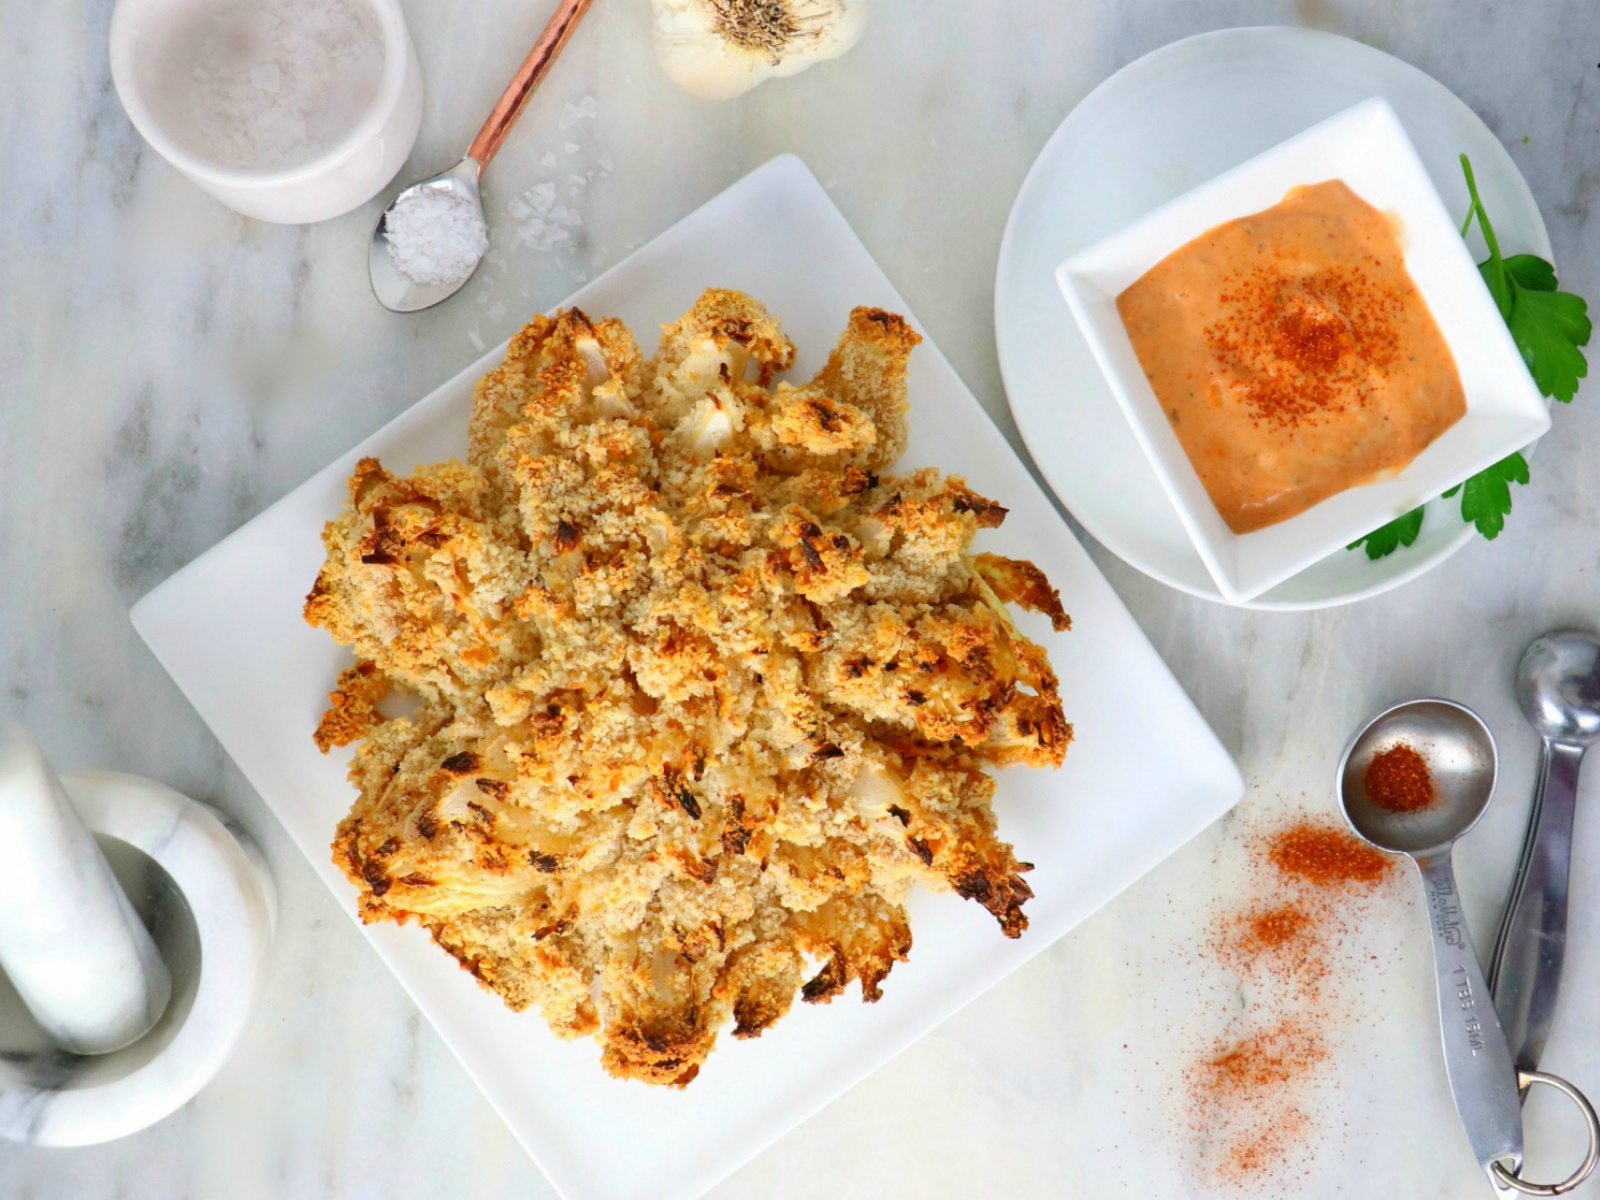 Blooming Onion with Dipping Sauce